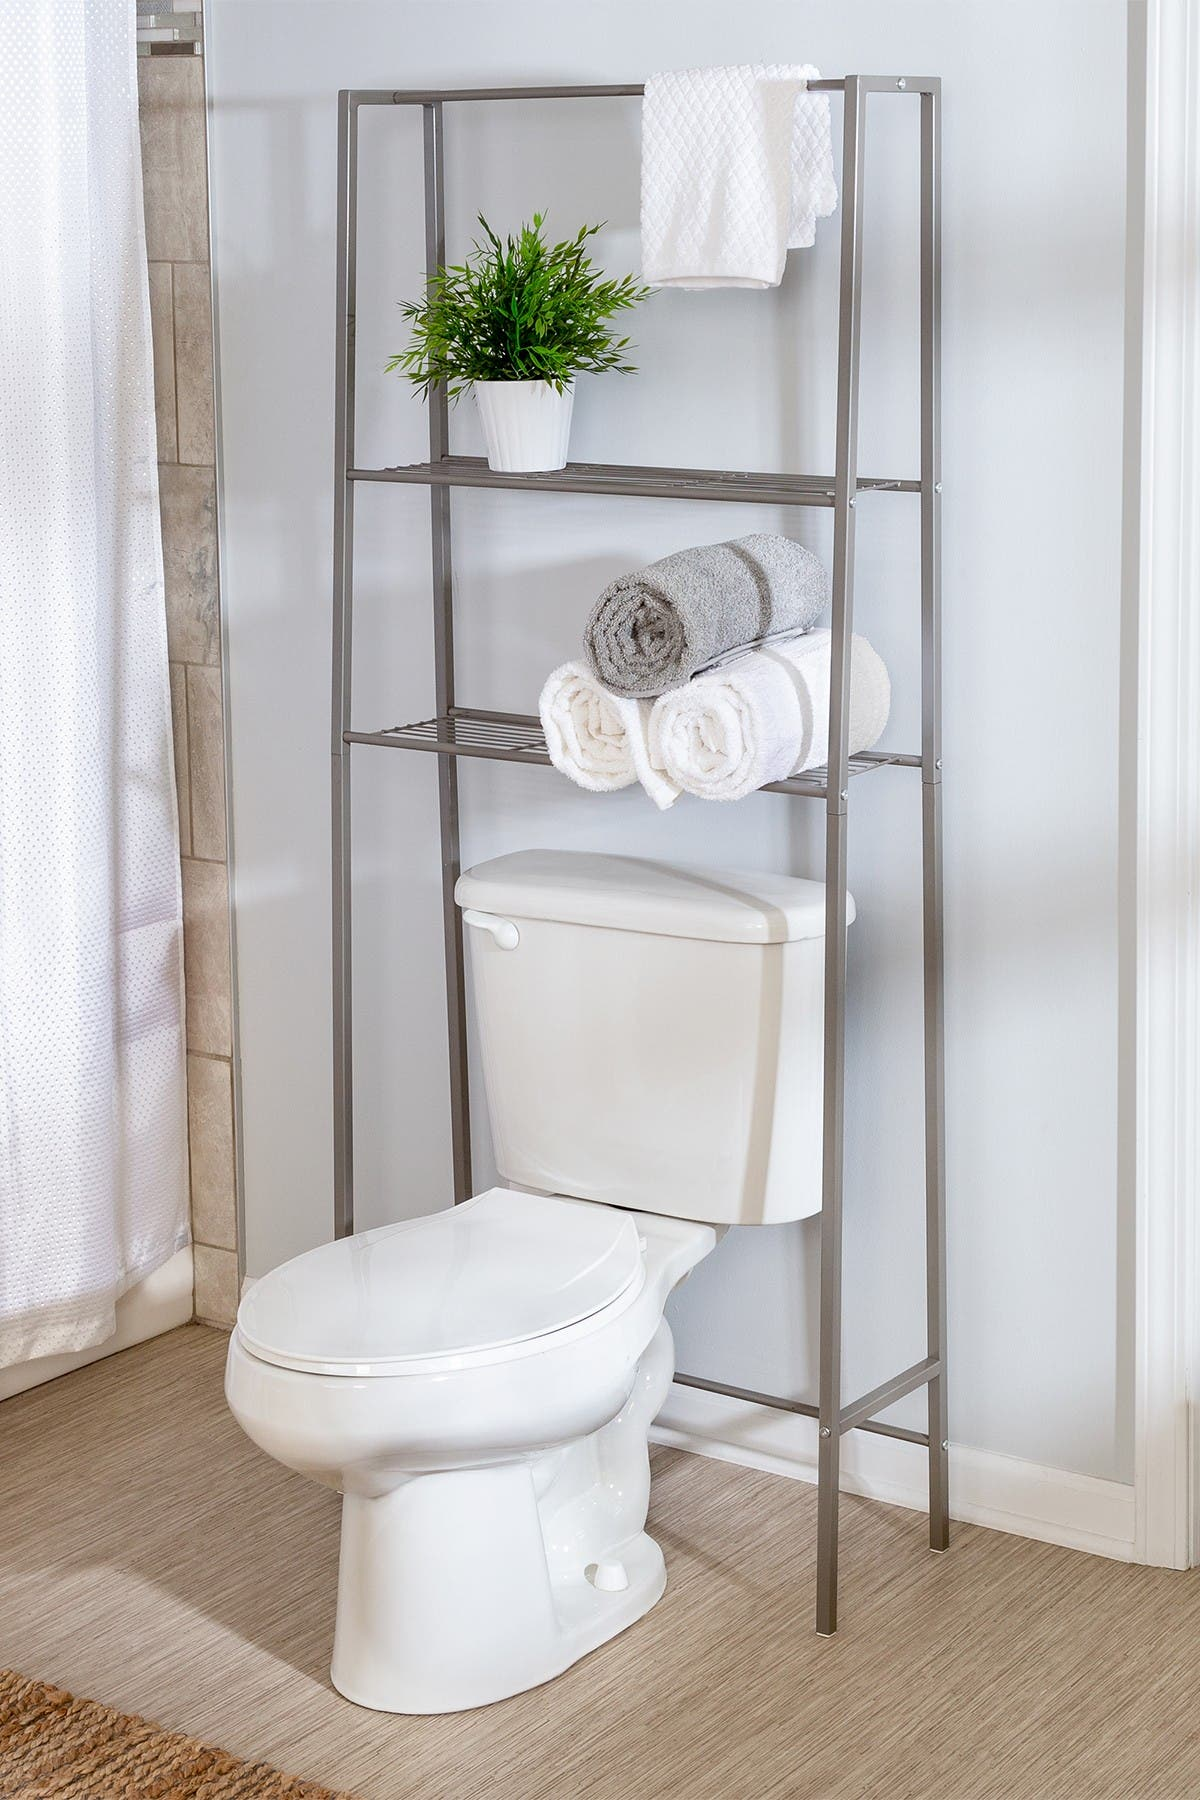 Image of Honey-Can-Do Nickel Over-the-Toilet Space Saver